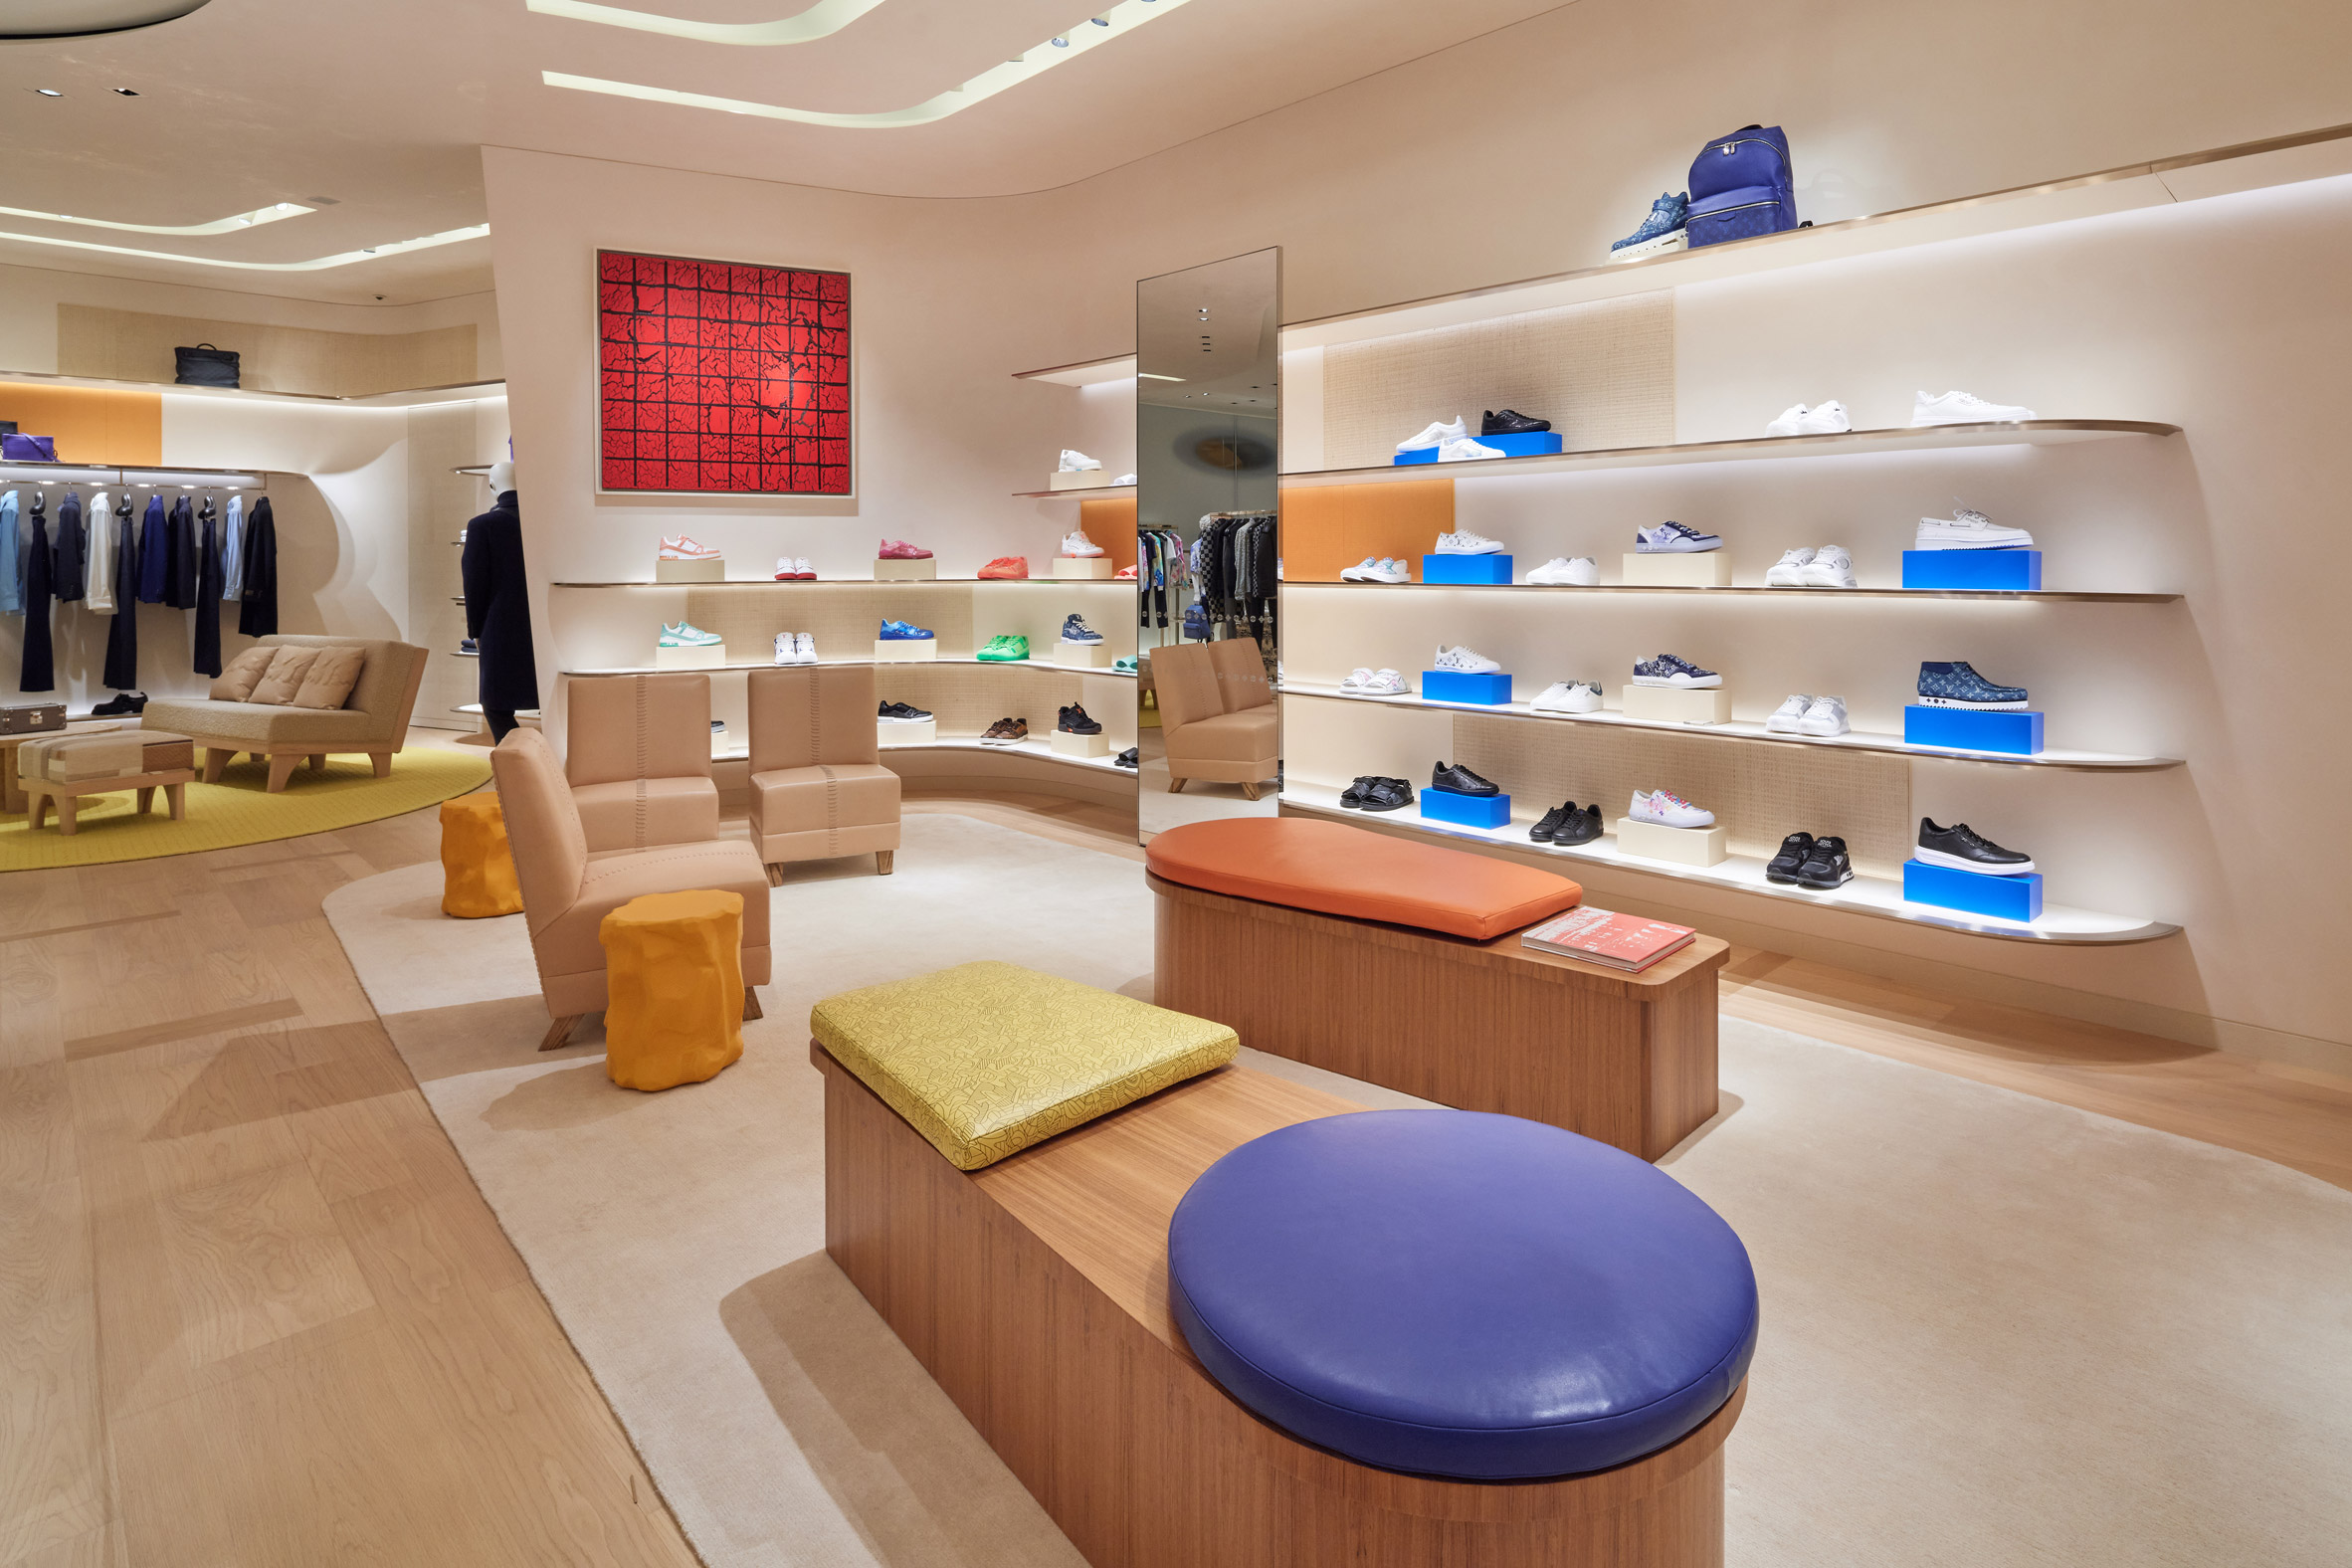 The interiors have colourful furniture